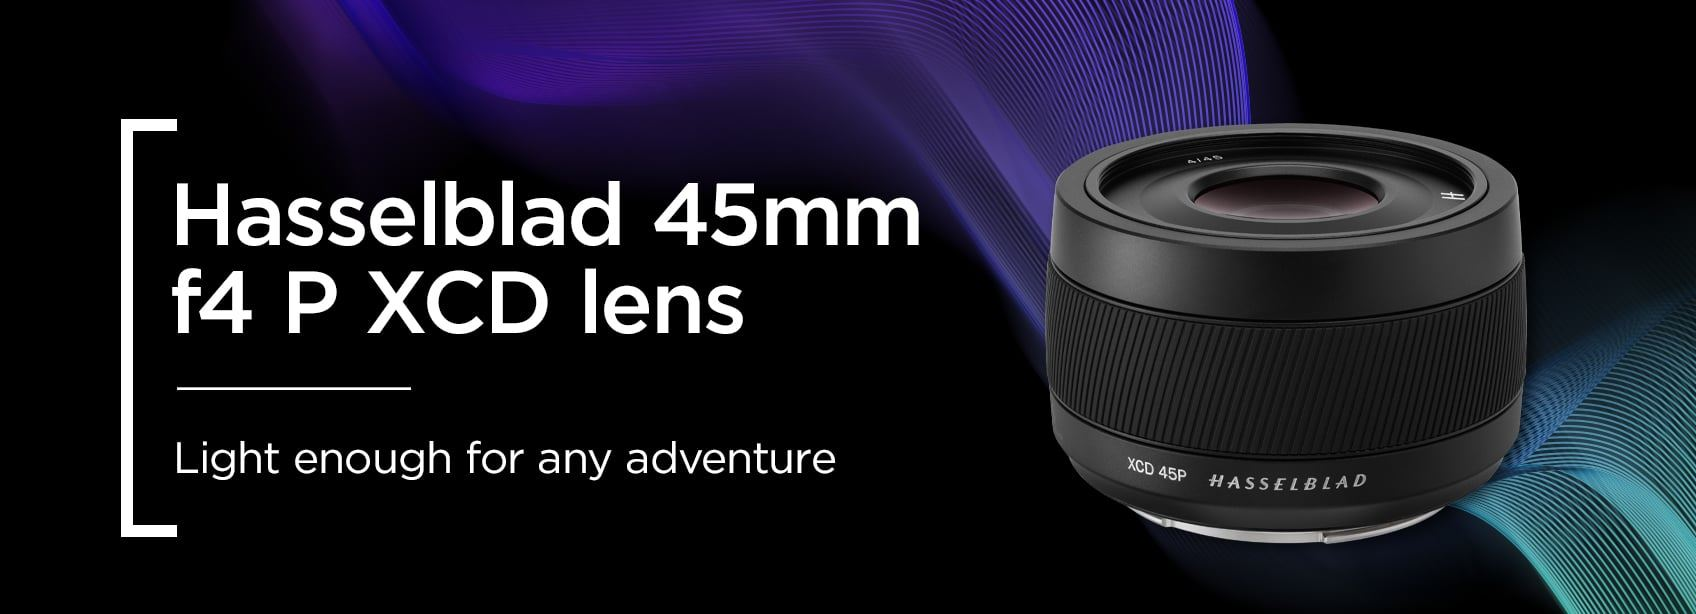 Hasselblad 45mm f4 P XCD lens - Light enough for any adventure